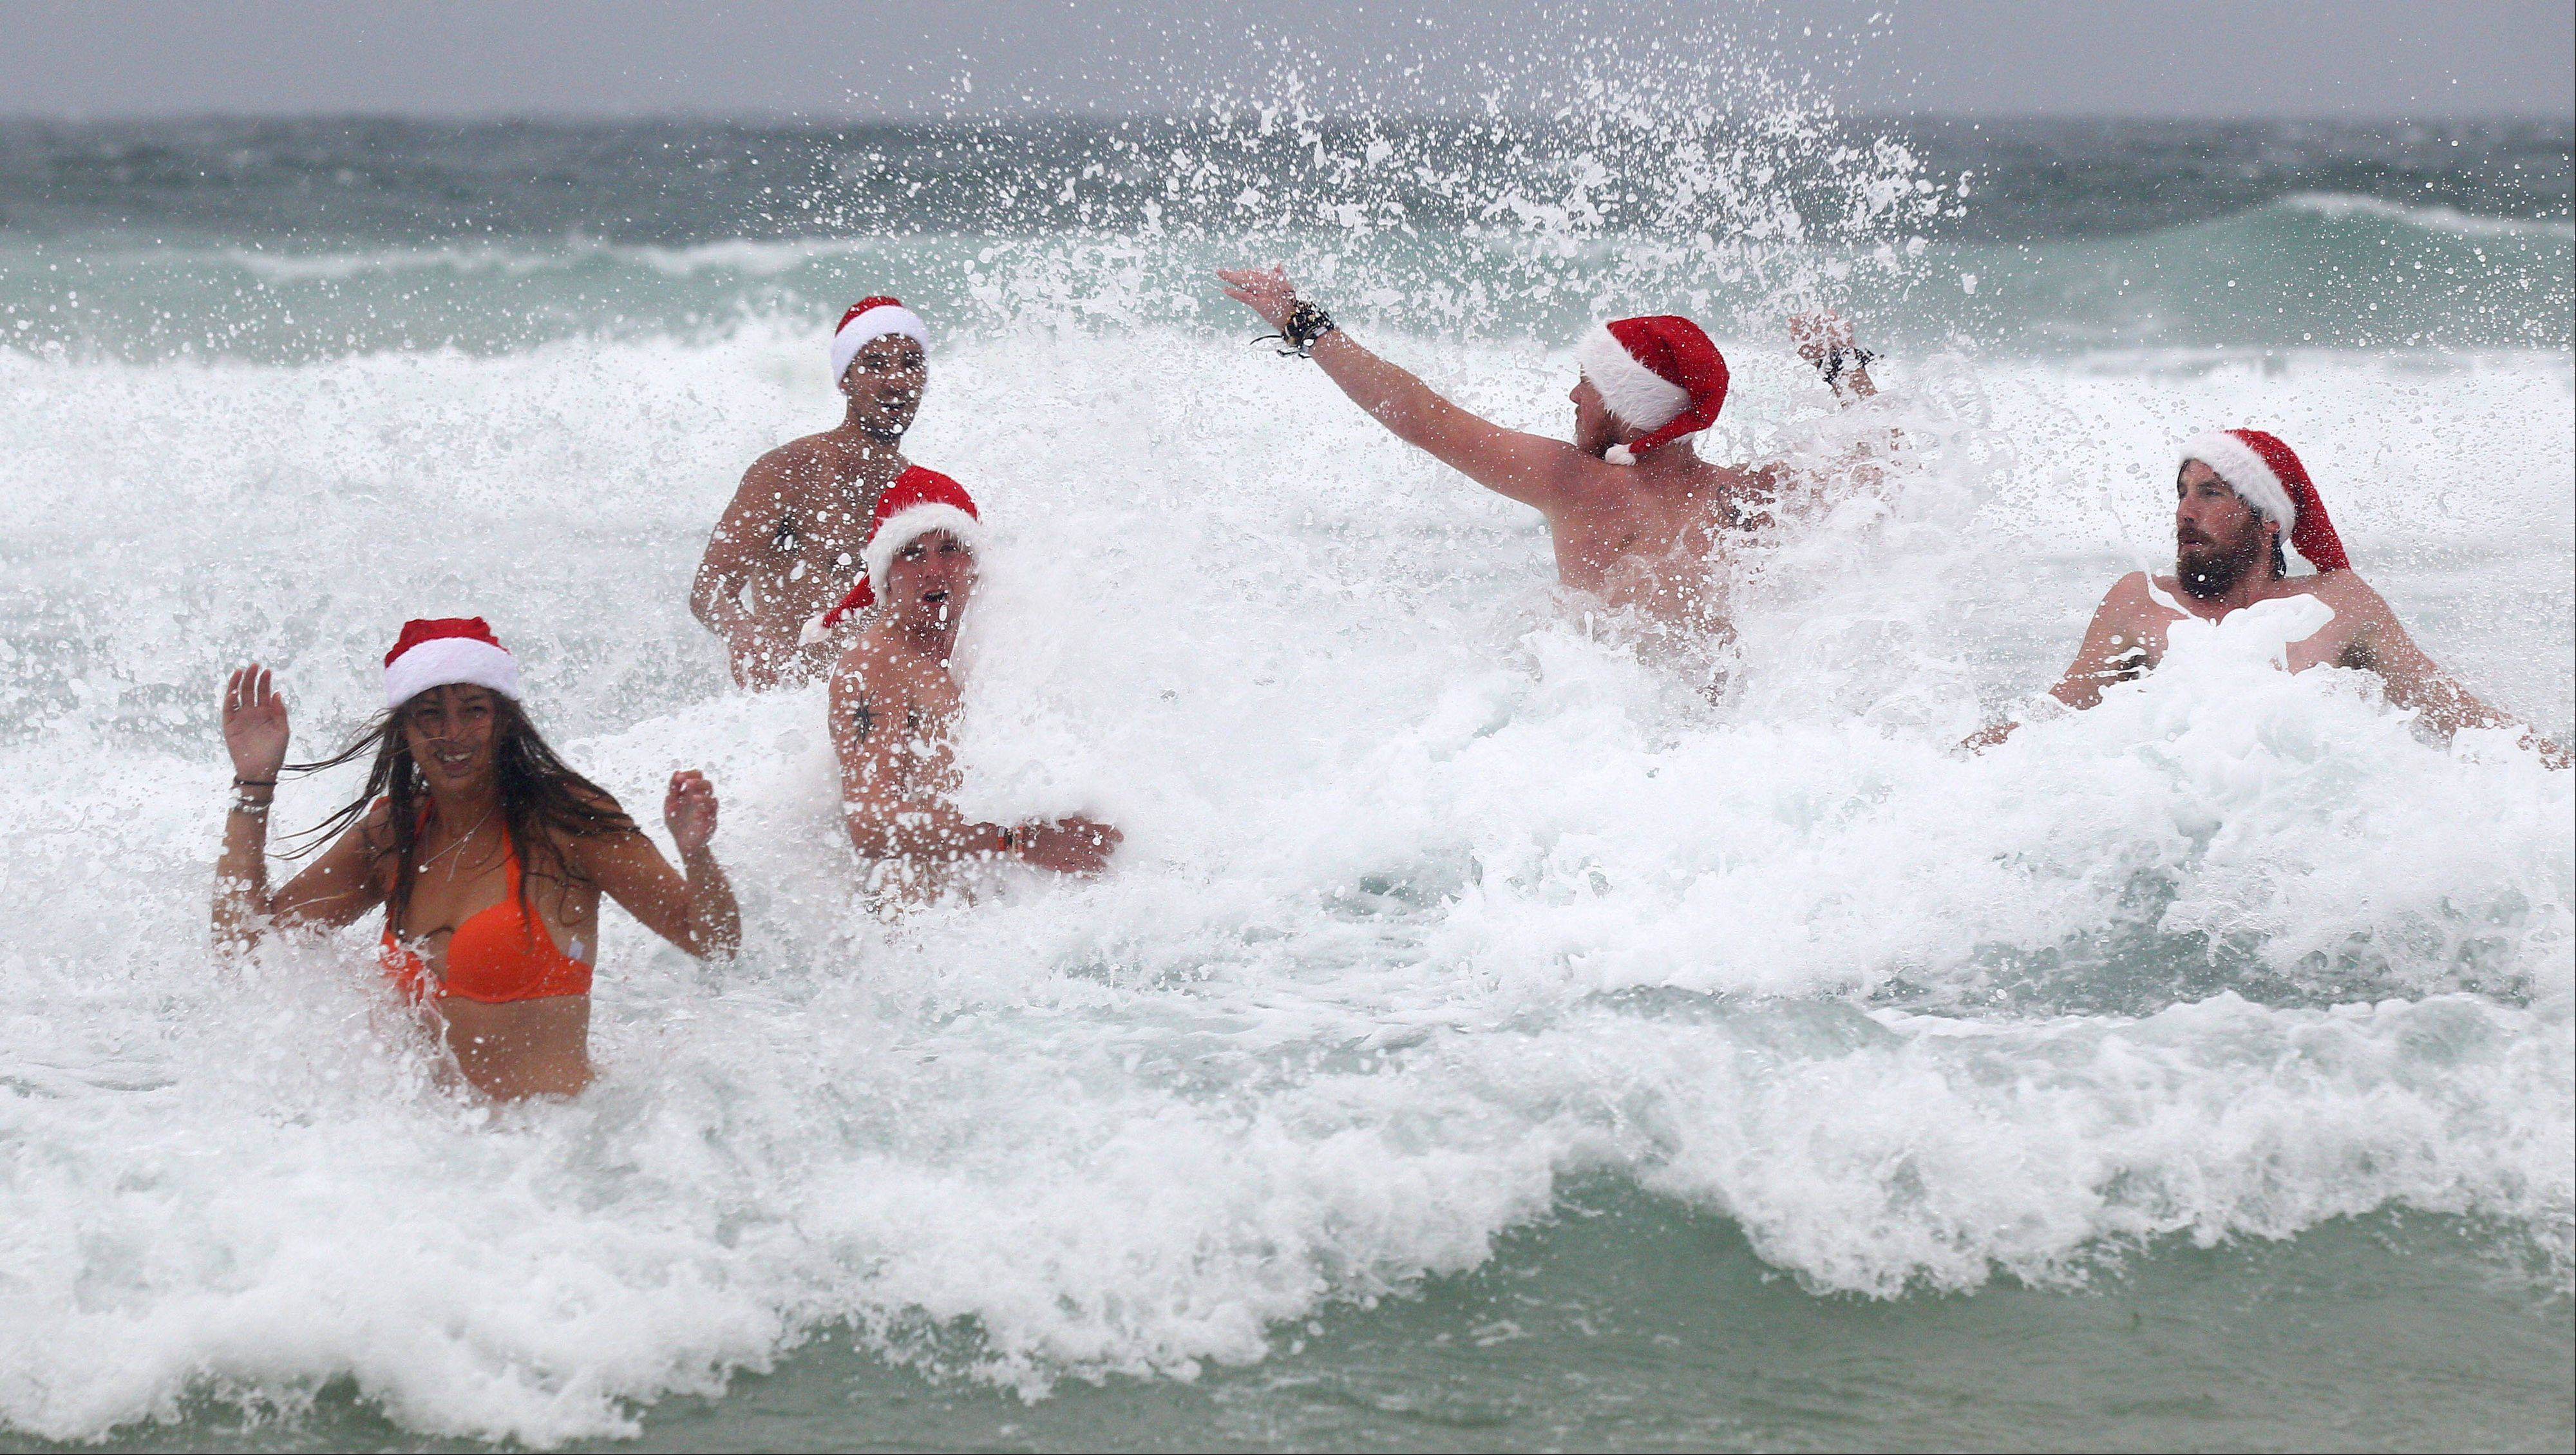 British travelers, left to right, Isolde Lewis, Spencer Sullivan, Damon Hull, Lewis Conlon and Daniel Strange celebrate Christmas Day despite wet and cold weather at Bondi Beach in Sydney, Australia, Tuesday, Dec. 25, 2012.